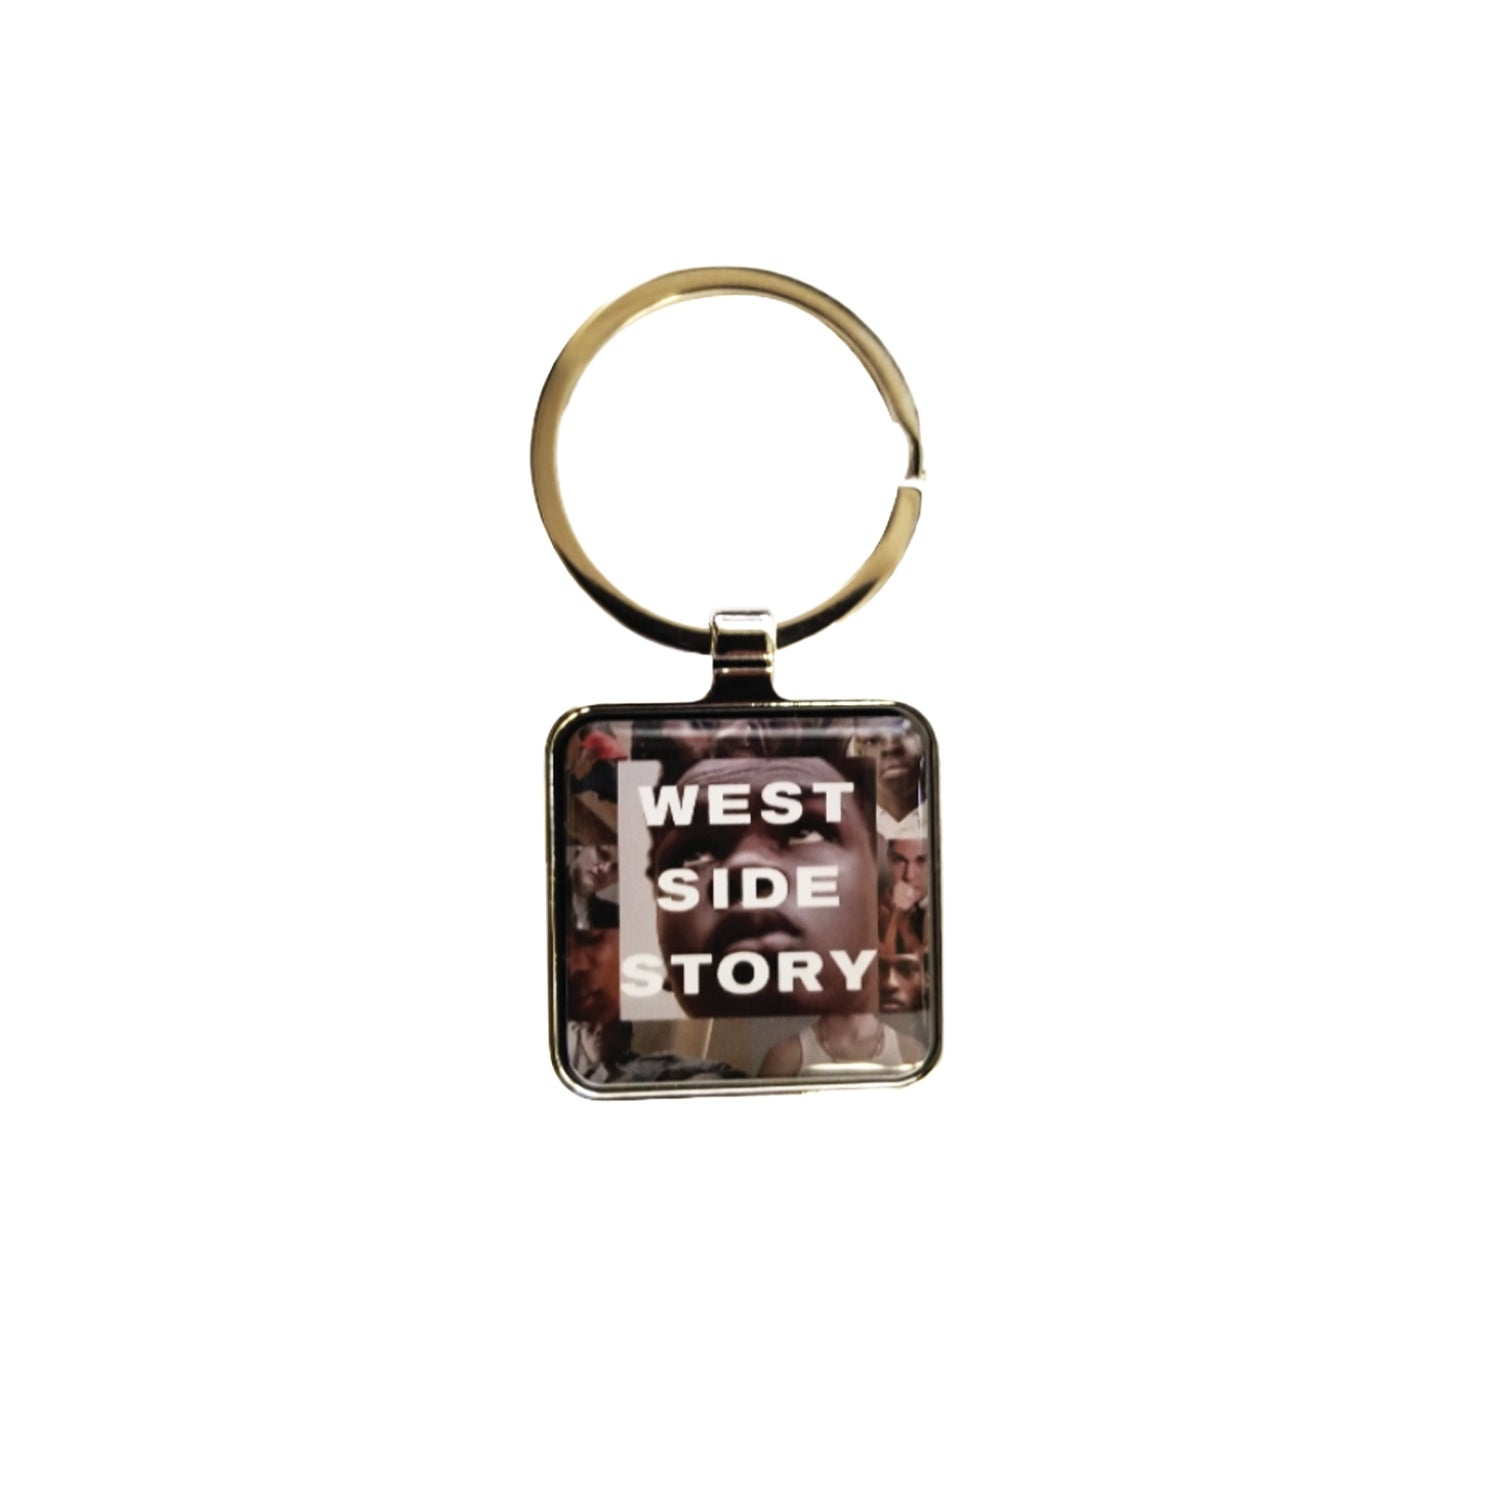 WEST SIDE STORY Keychain Image